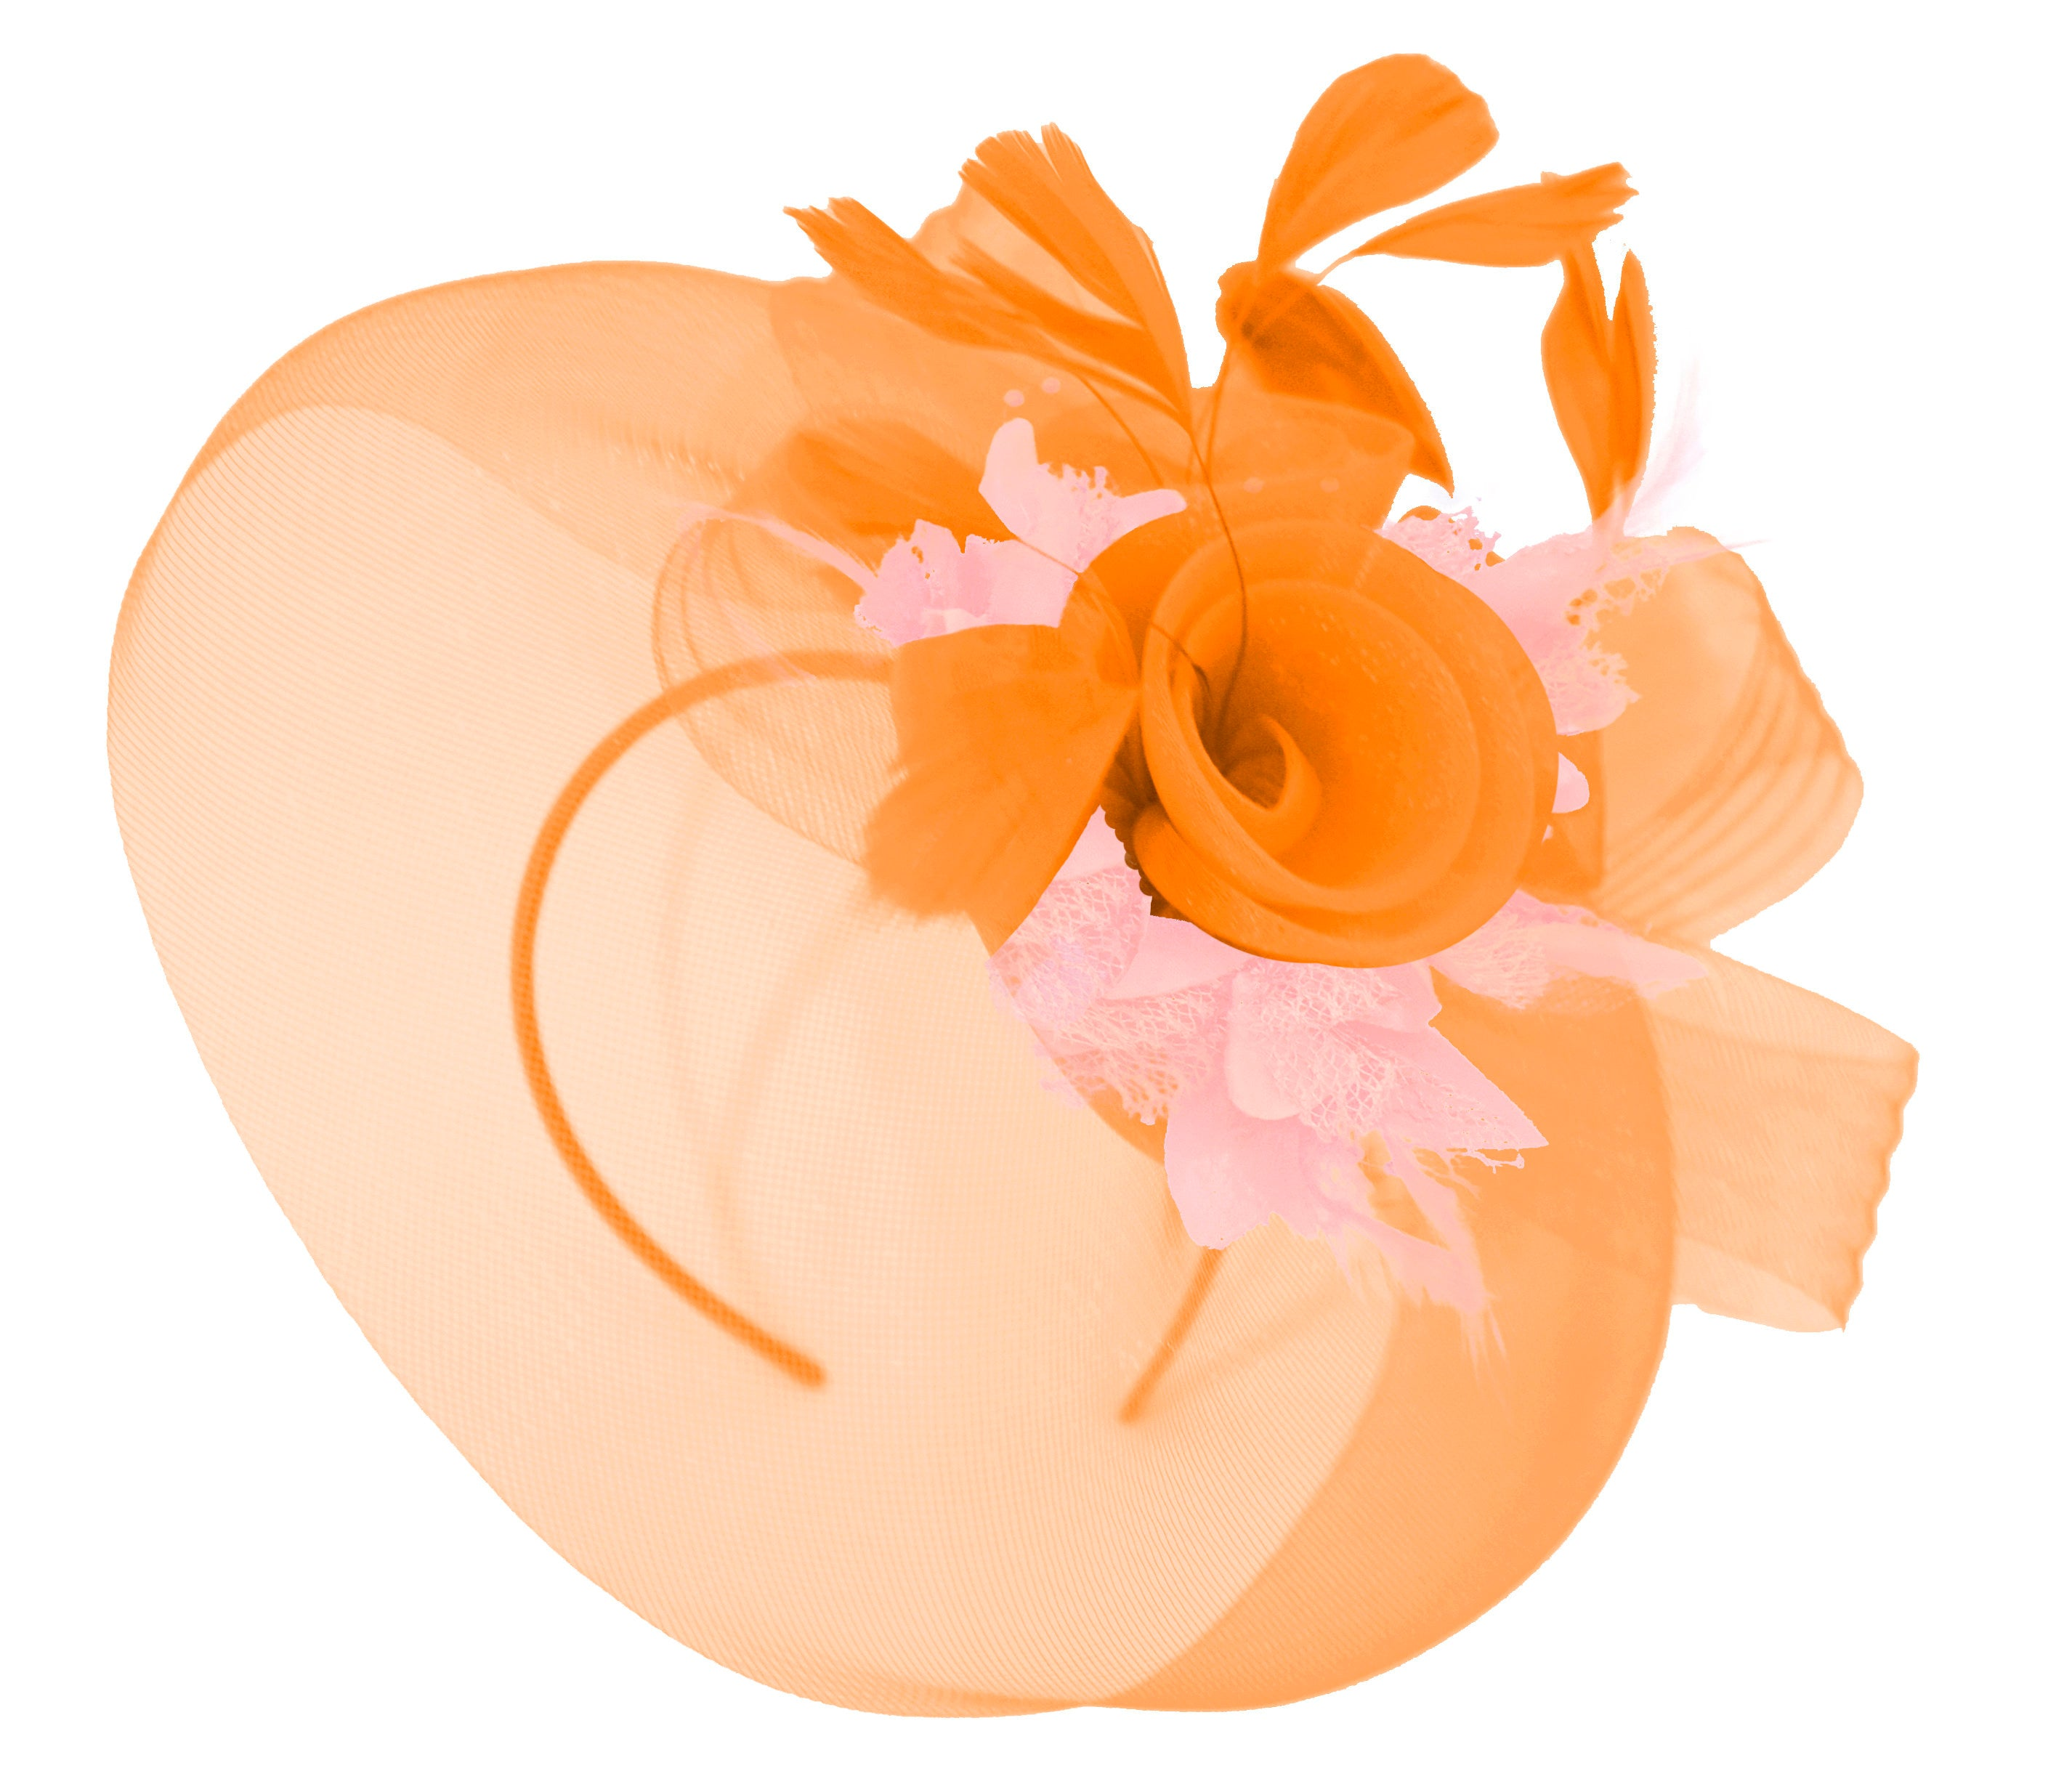 Caprilite Orange and Baby Pink Fascinator Hat Veil Net Hair Clip Ascot Derby Races Wedding Headband Feather Flower